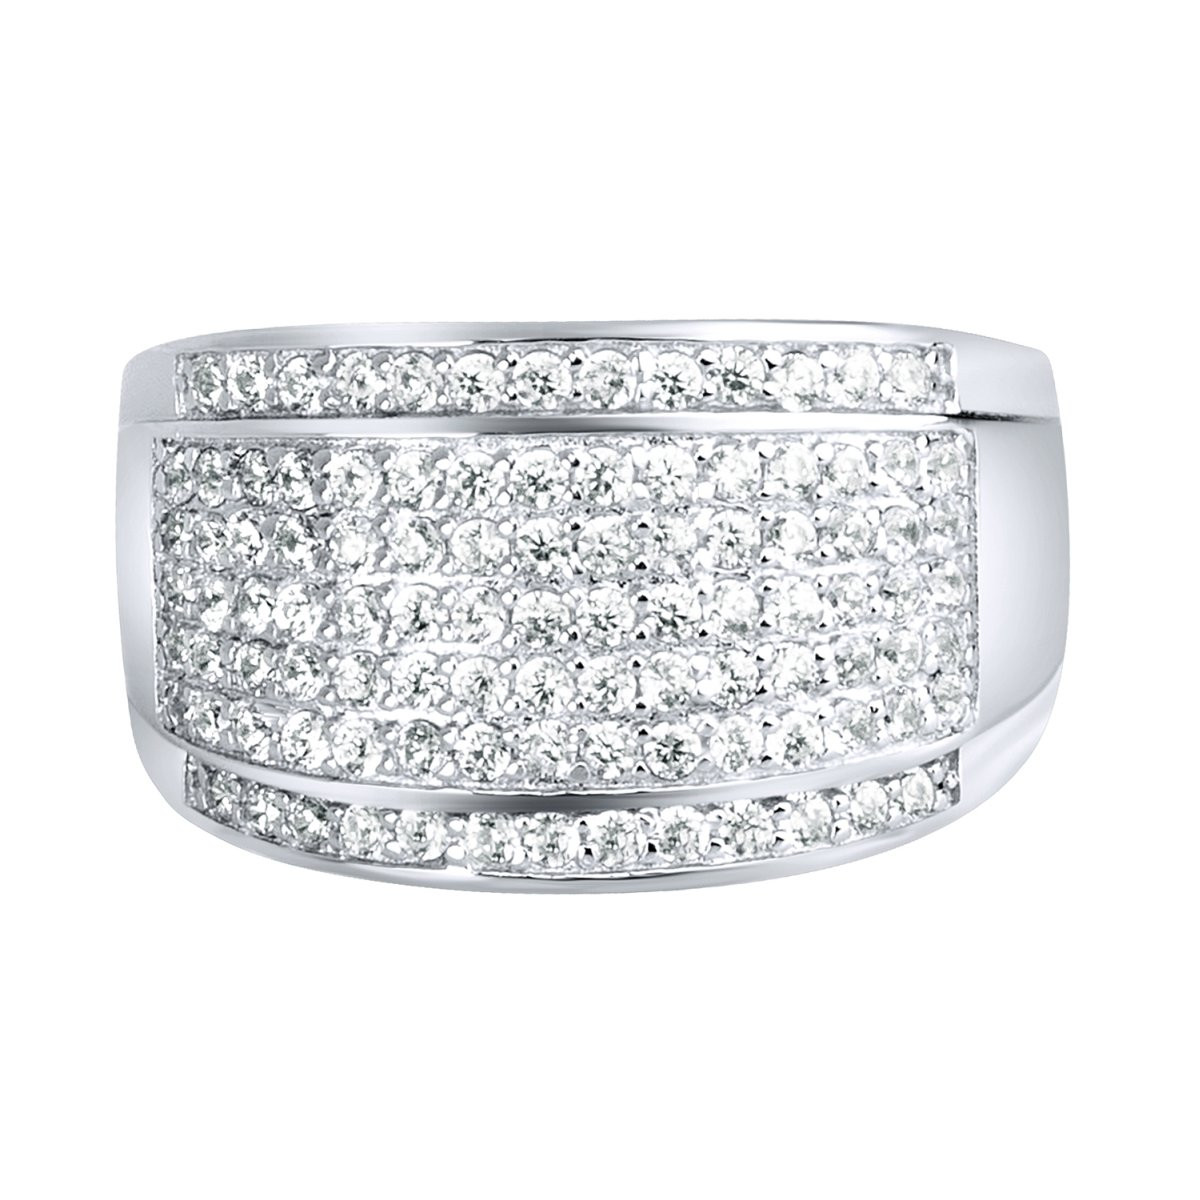 Iced Out Sterling 925 Silver Pave Ring - ROUND ICE - 10